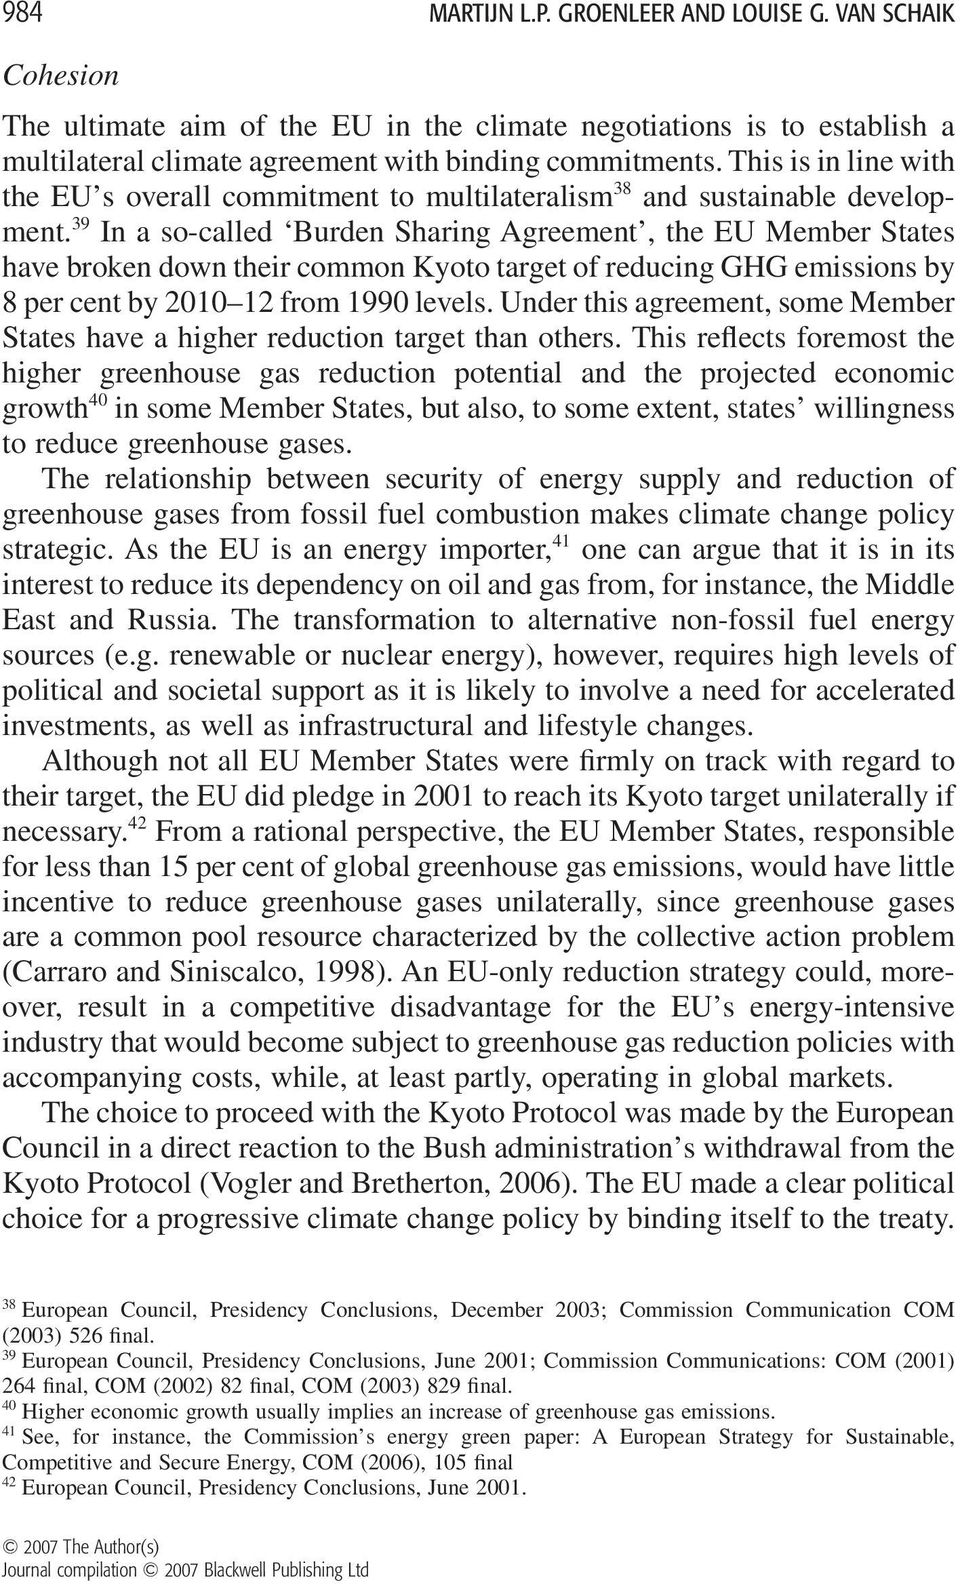 39 In a so-called Burden Sharing Agreement, the EU Member States have broken down their common Kyoto target of reducing GHG emissions by 8 per cent by 2010 12 from 1990 levels.